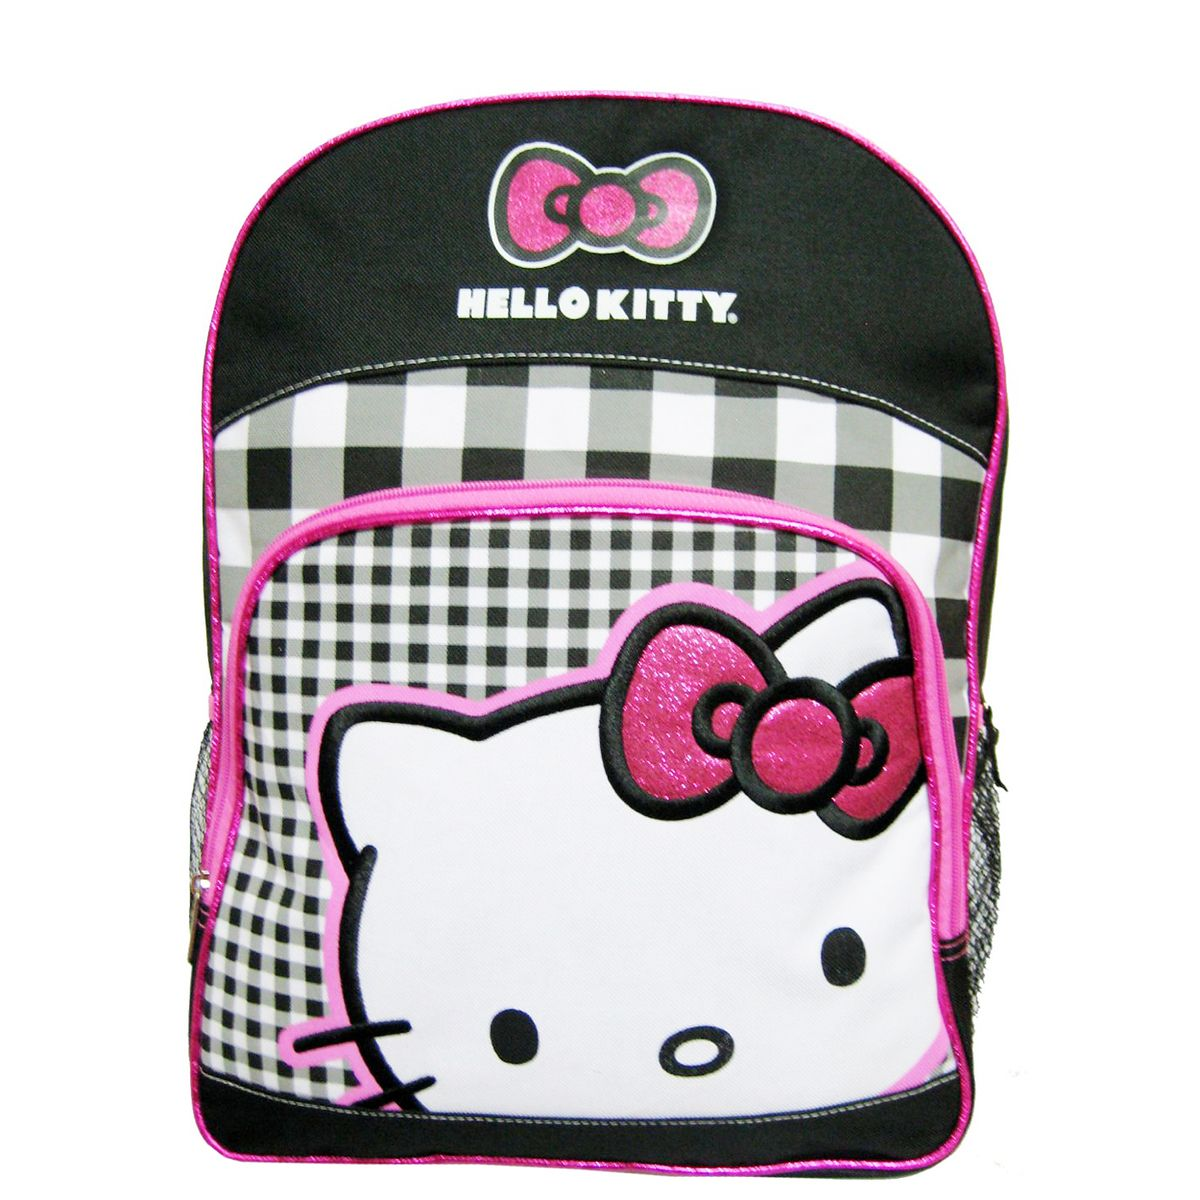 d2e13271d846 Description Official Licensed 16 inch Backpack Featured with Hello Kitty  Character Measurement  x x 1 Zippered Main Compartment 2 Side Mesh Pockets  1 Front ...